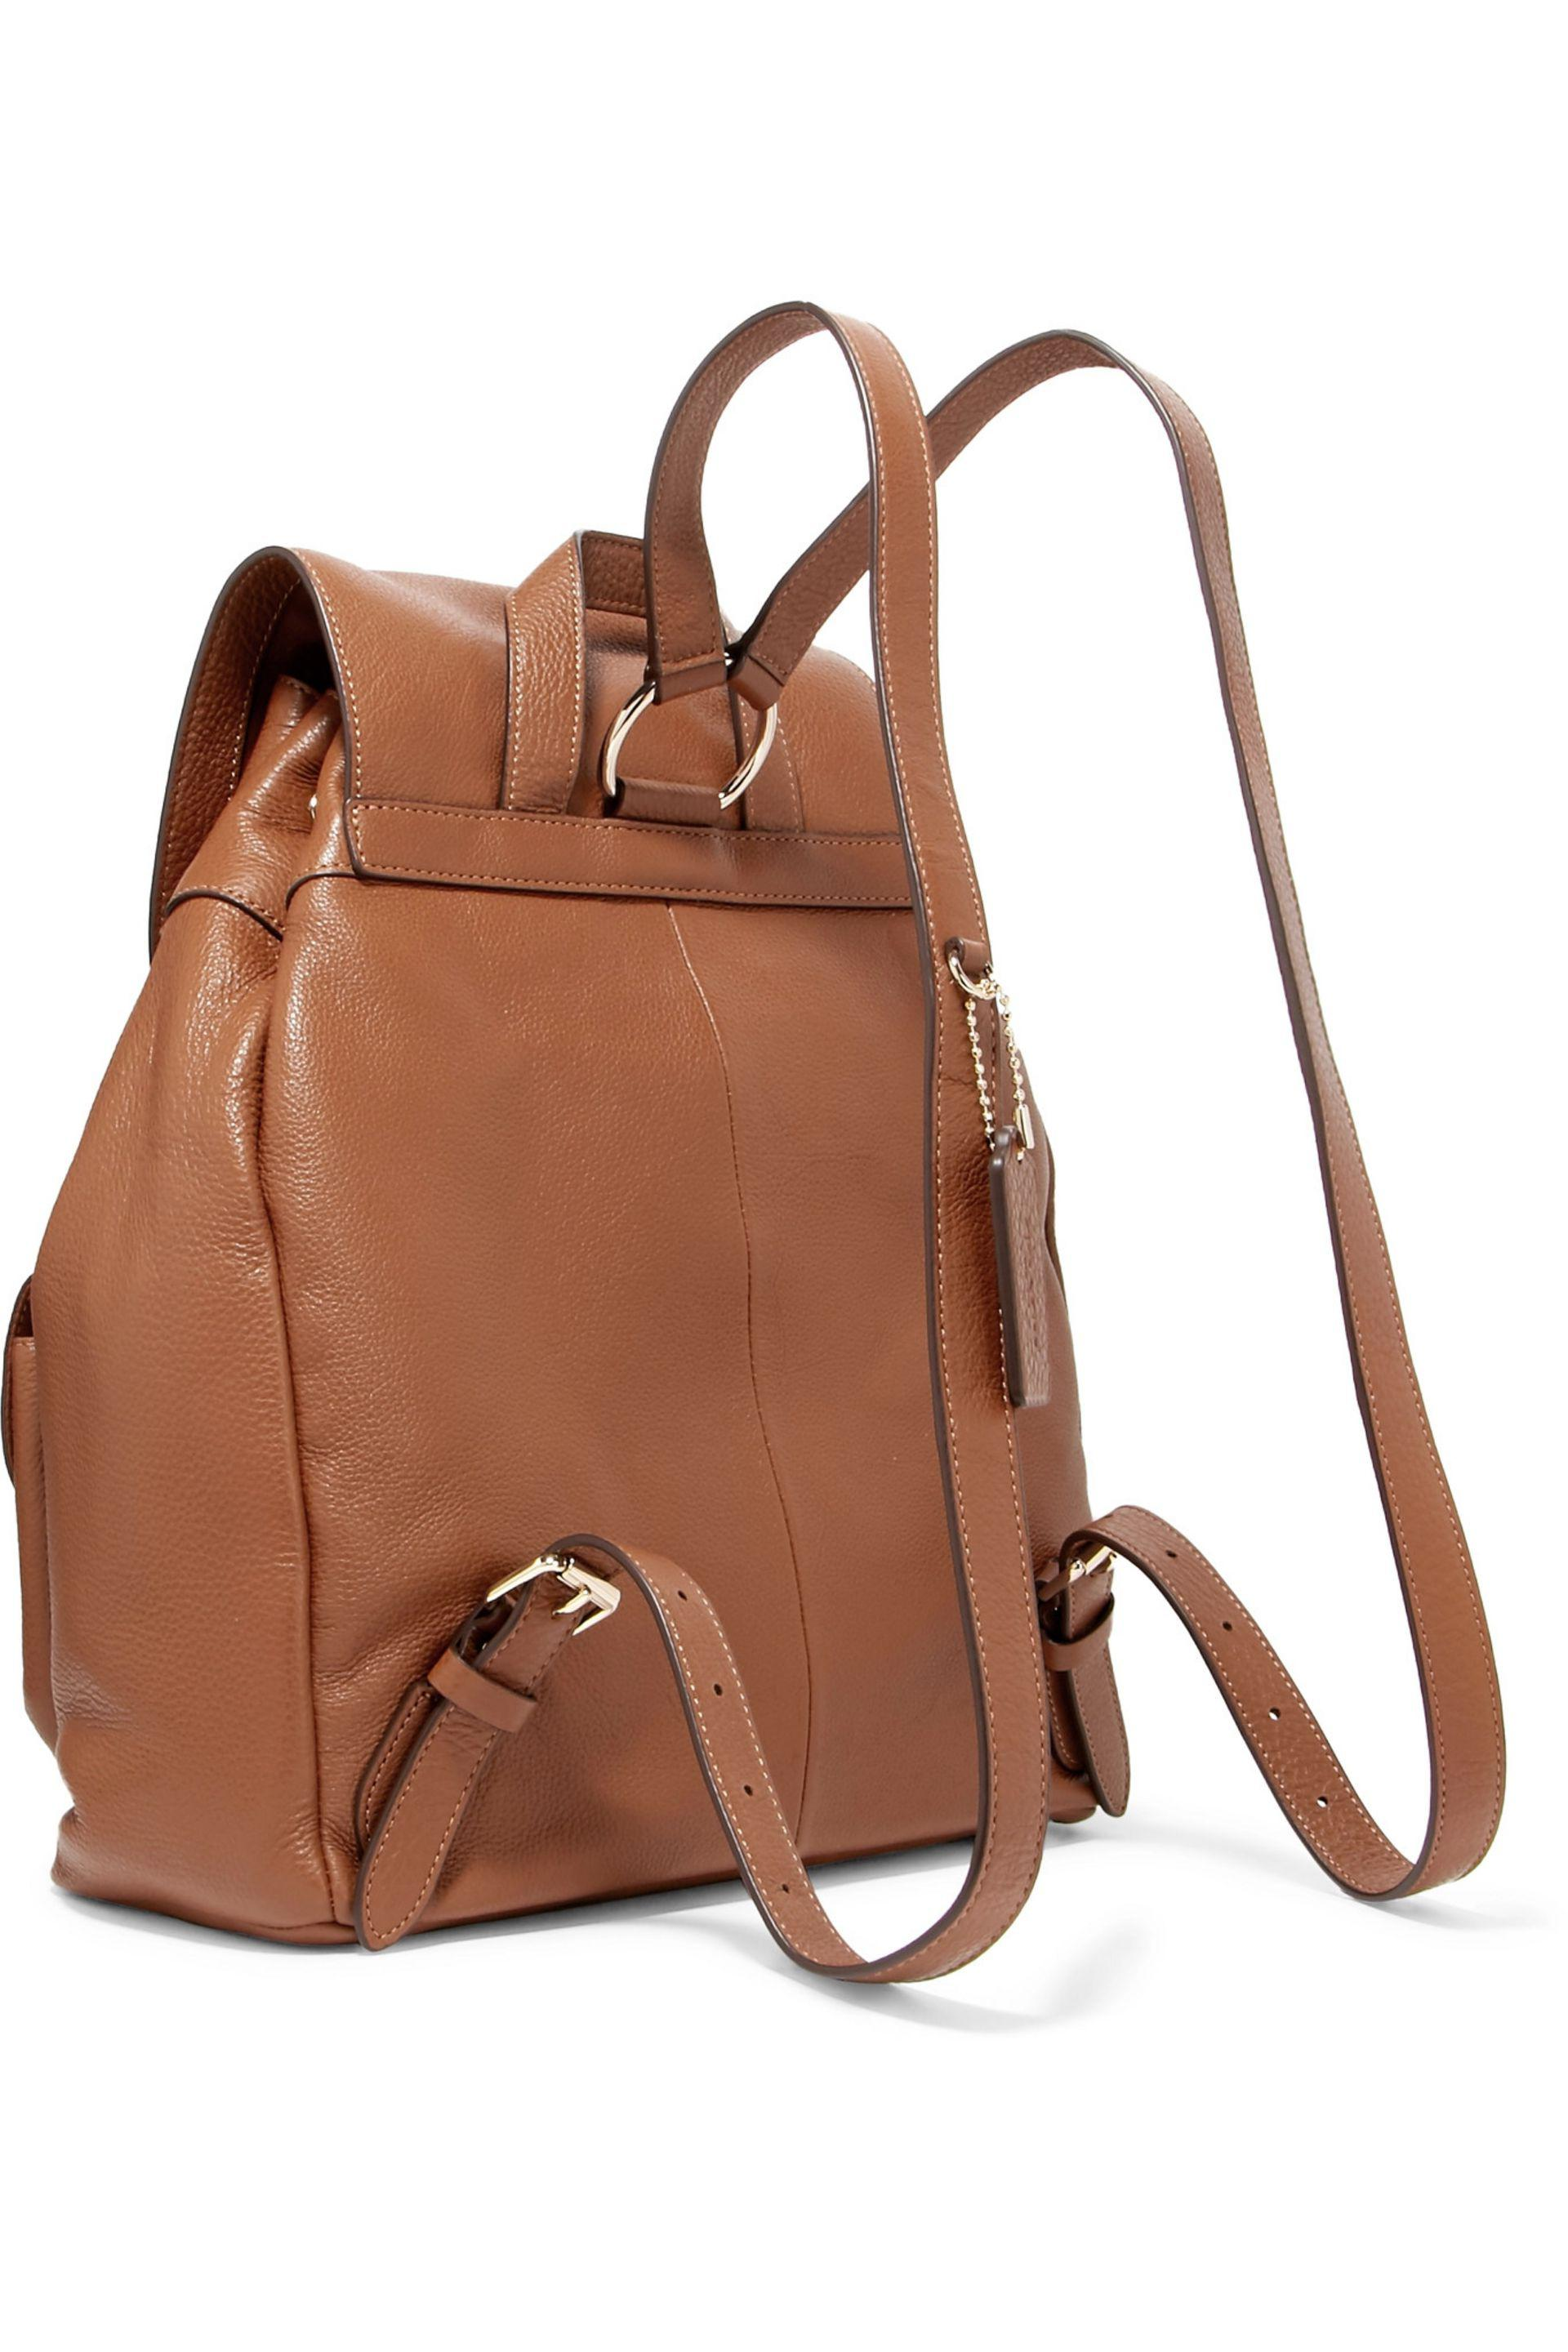 9a57c9cabedb COACH Billie Textured Leather Backpack in Brown - Lyst